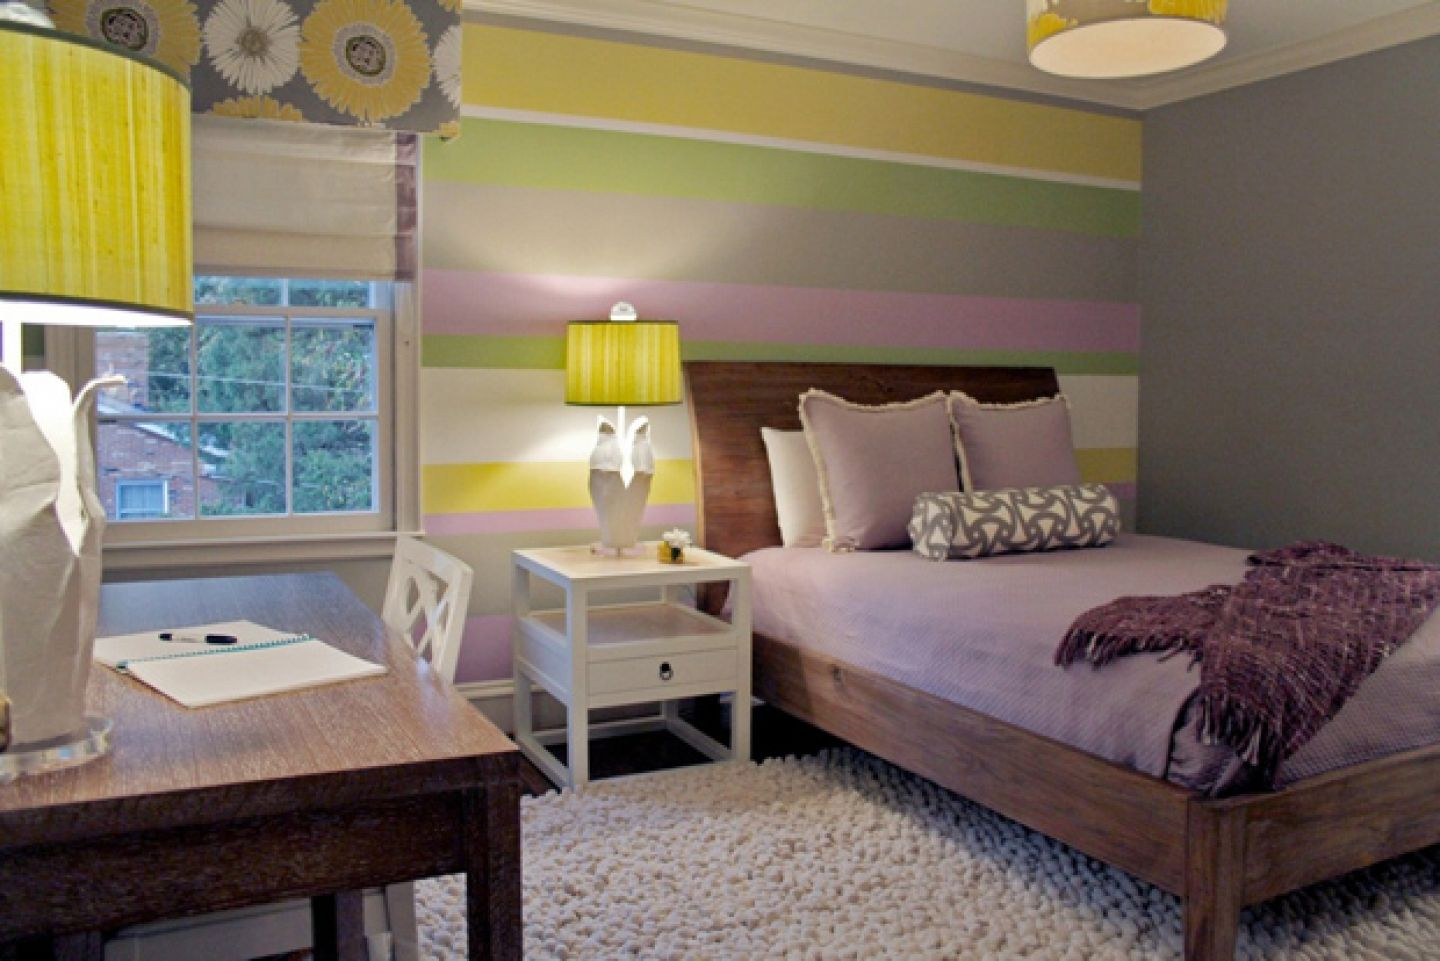 Bedroom colors yellow - Delightful Smart Teen Bedroom Idea Gray Grey Purple Green Yellow Listed In